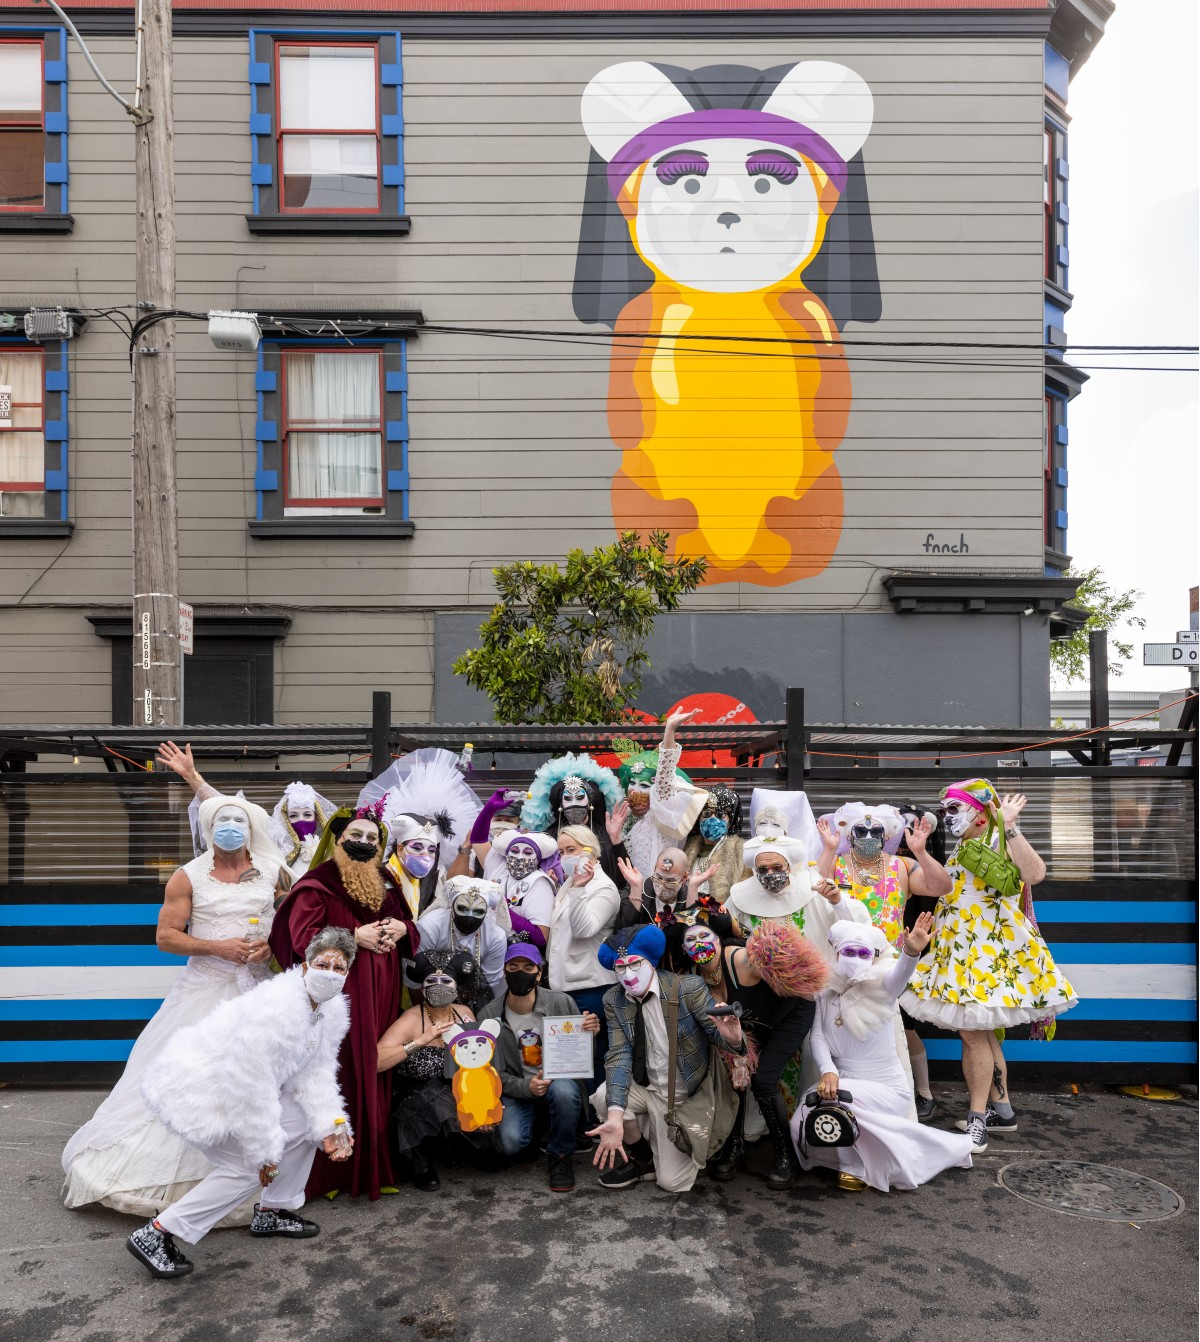 The blessing of the new fnnch artwork honoring the Sisters of Perpetual Indulgence